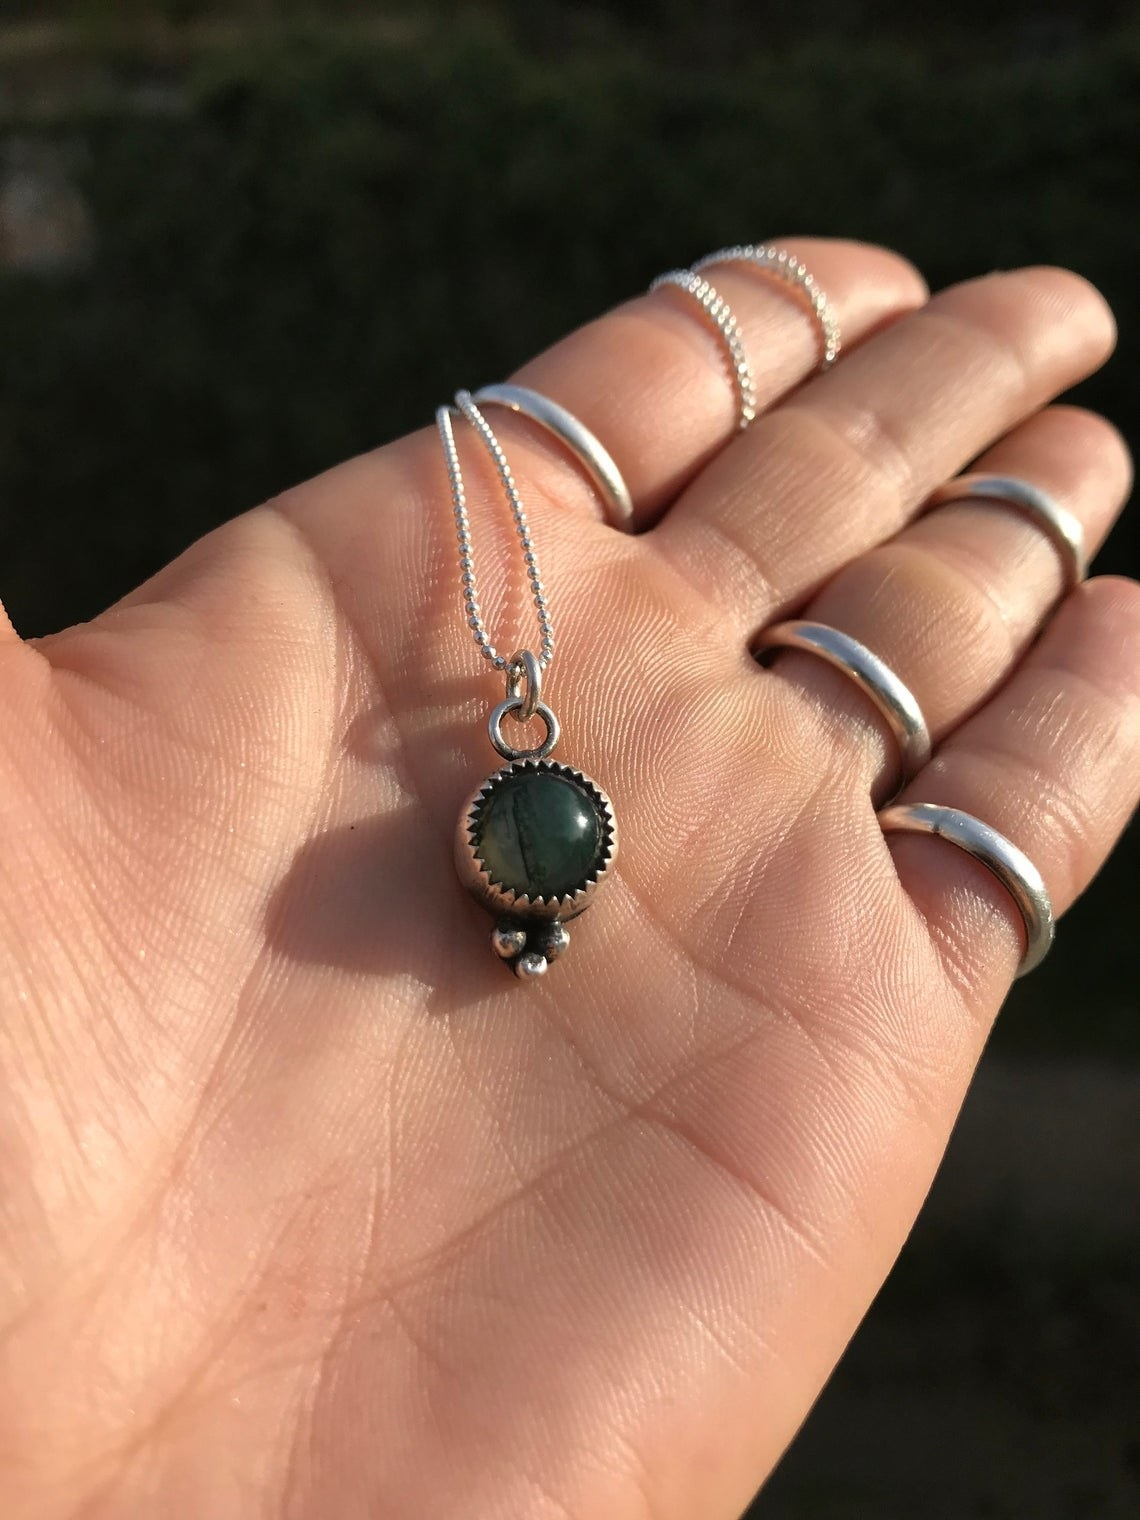 The mini-charm necklace